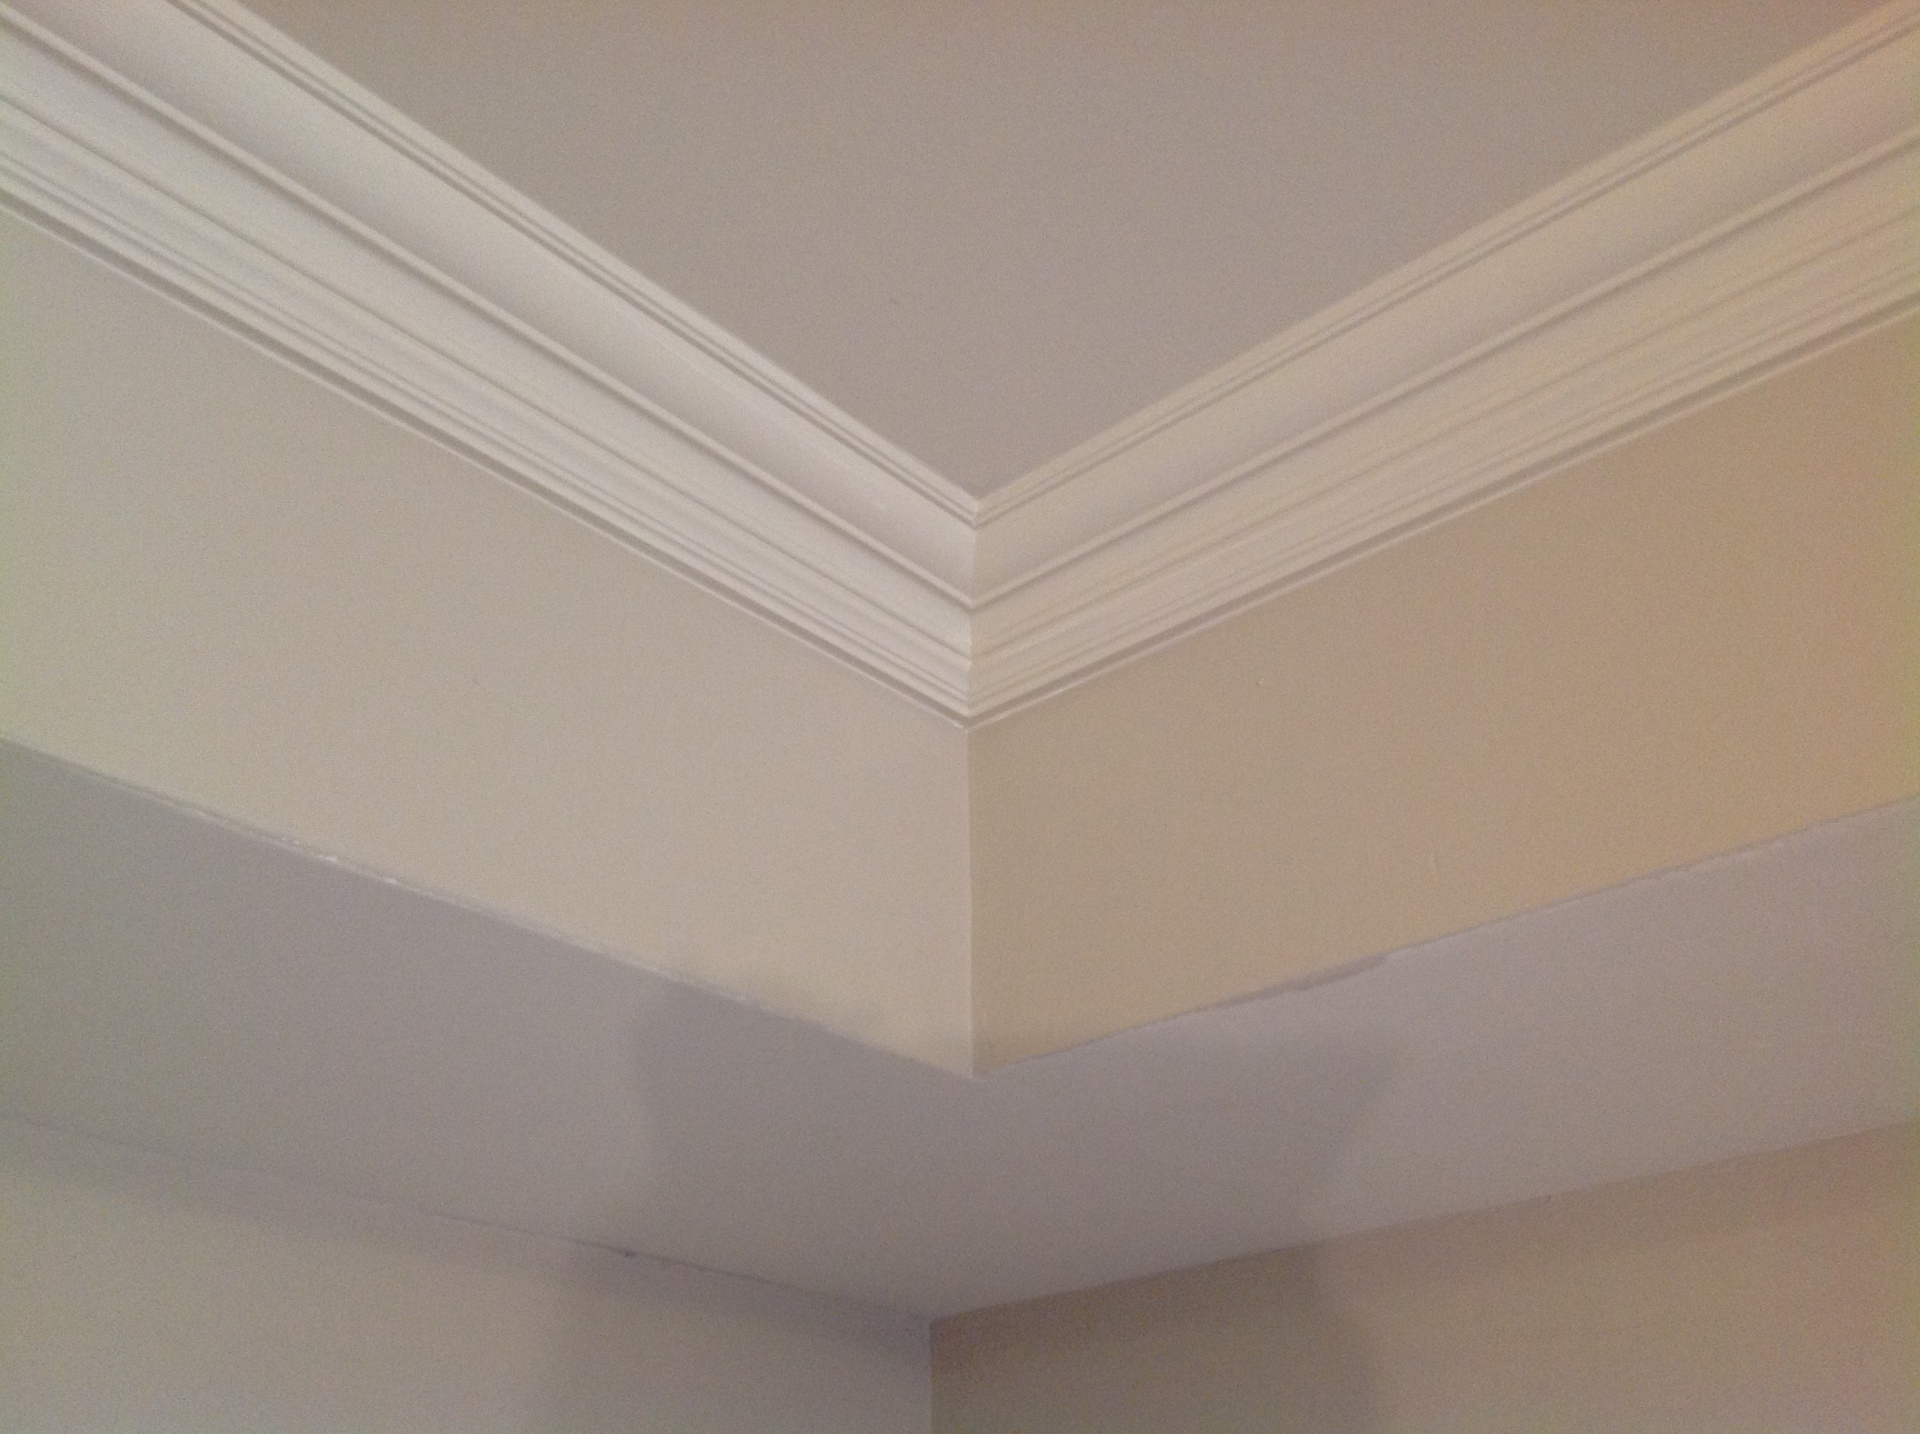 White crown molding